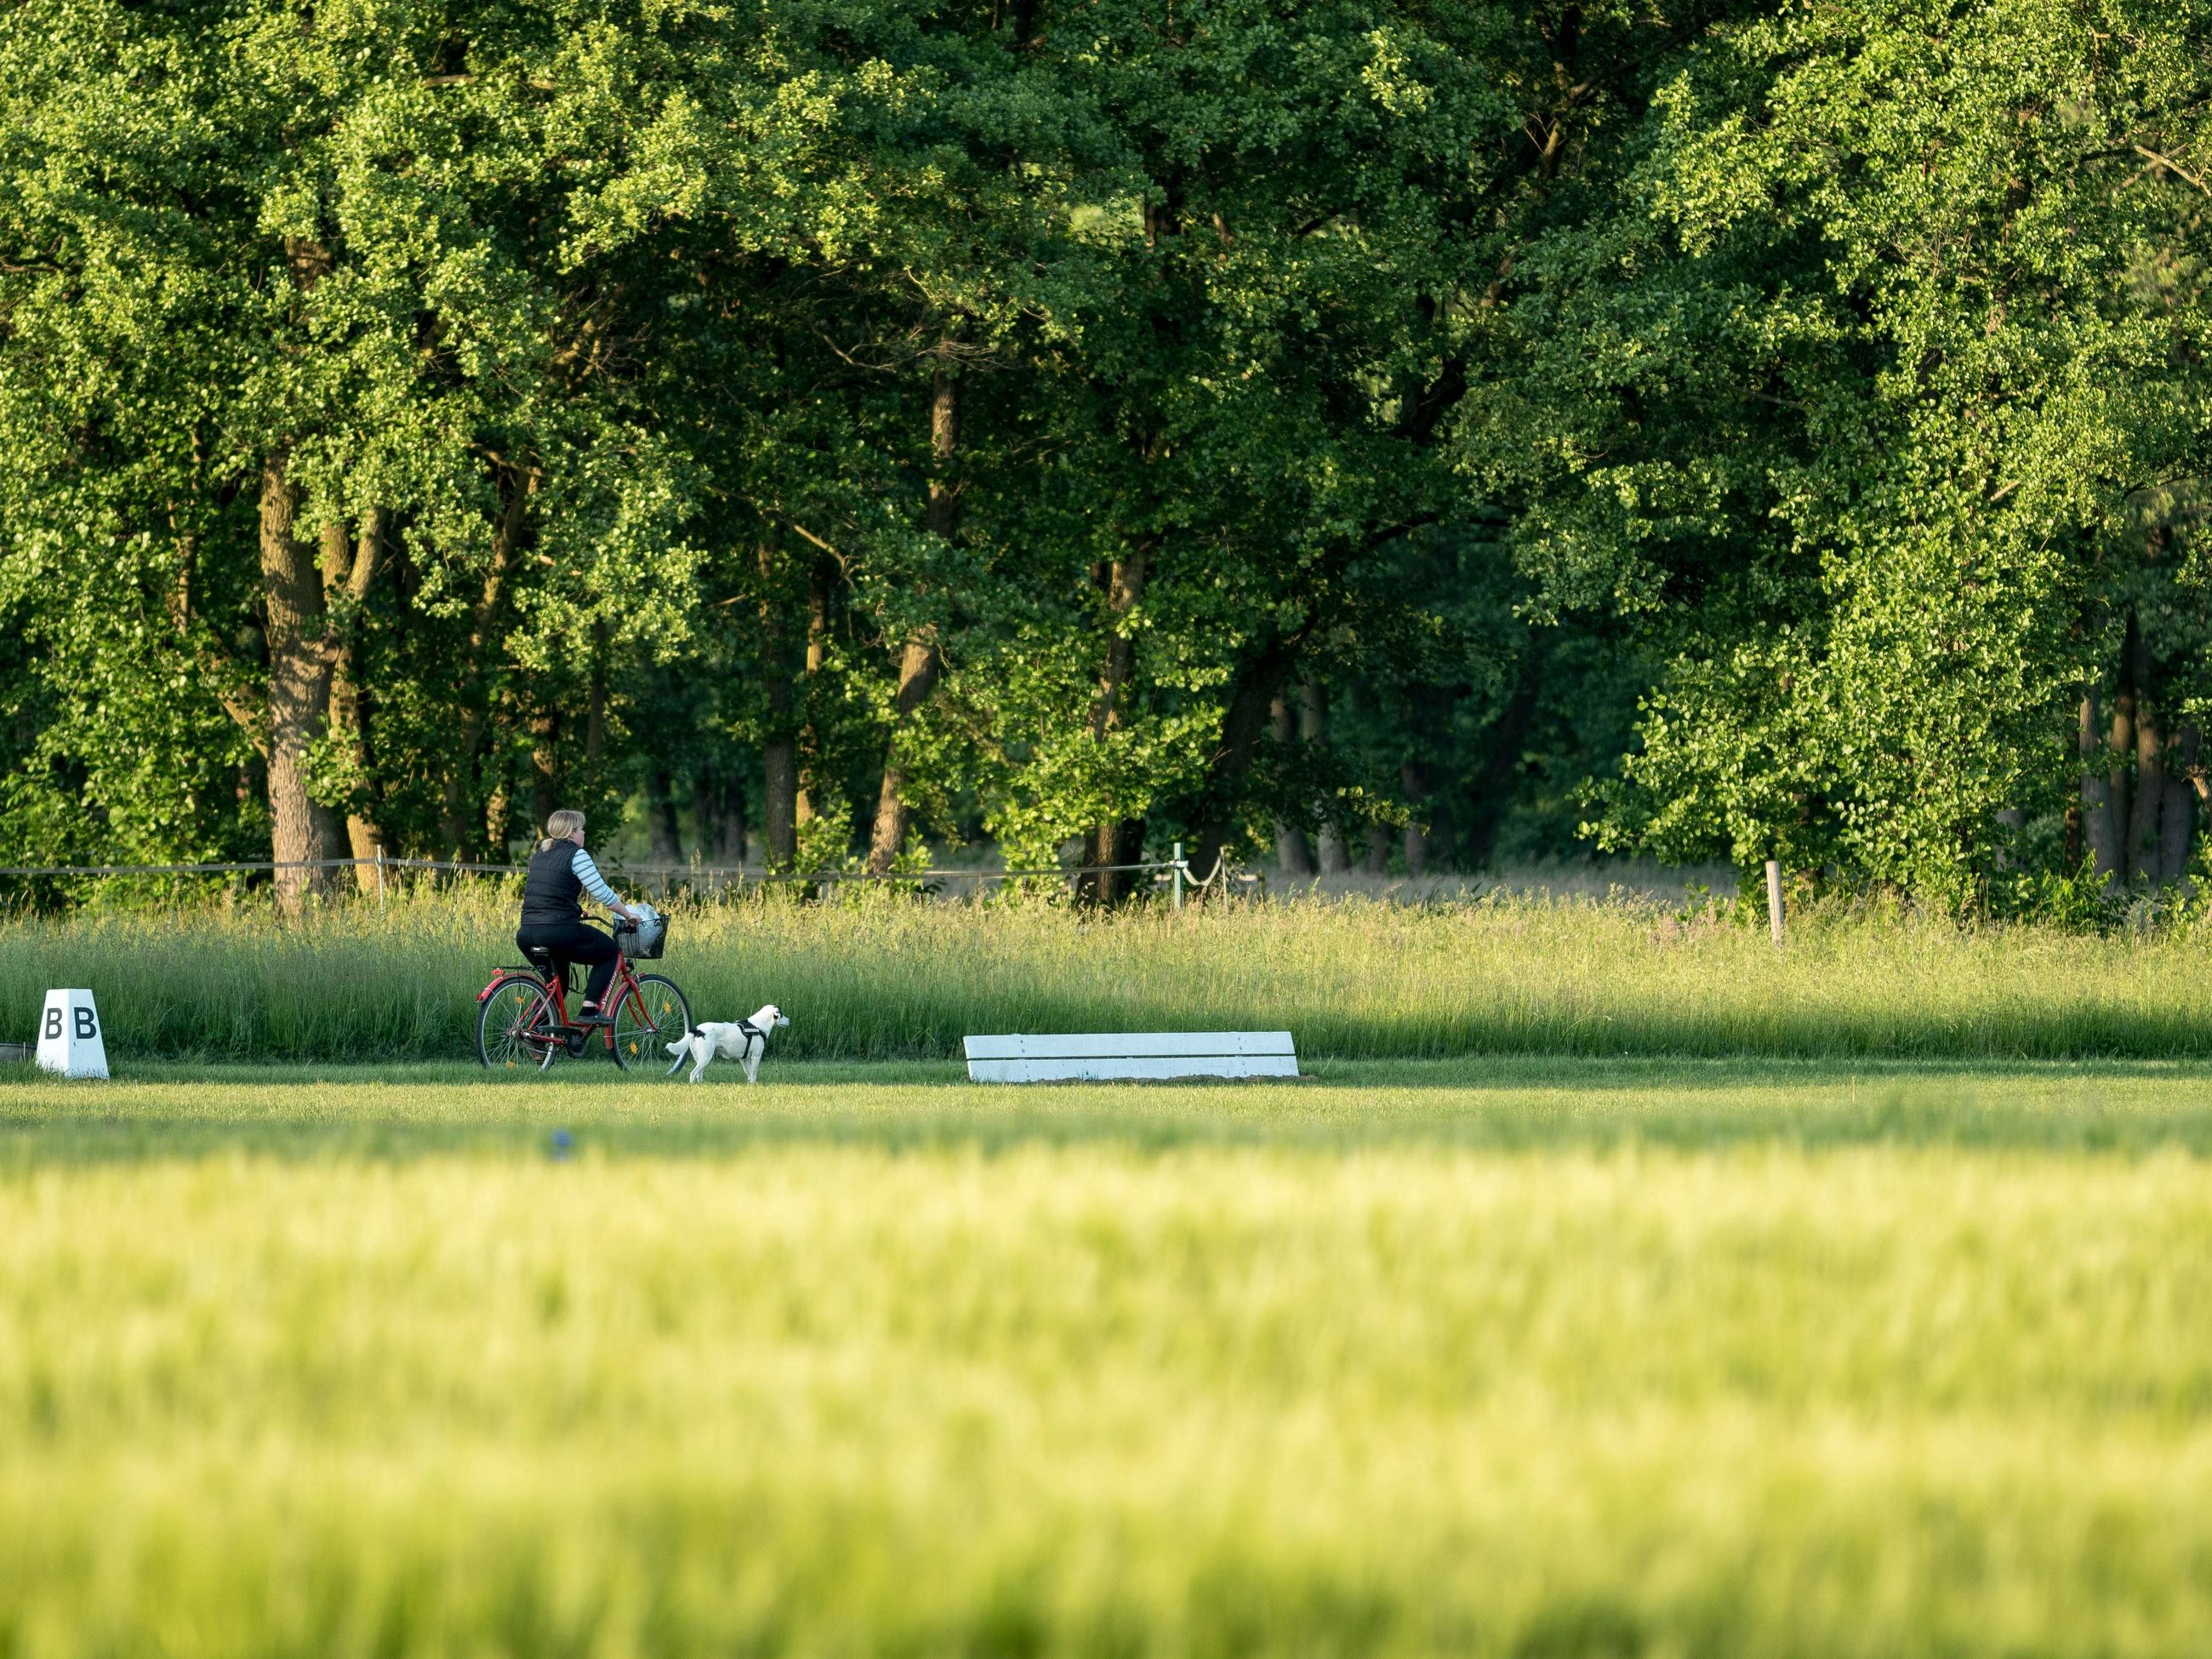 MAN RIDING BICYCLE ON FIELD BY TREES